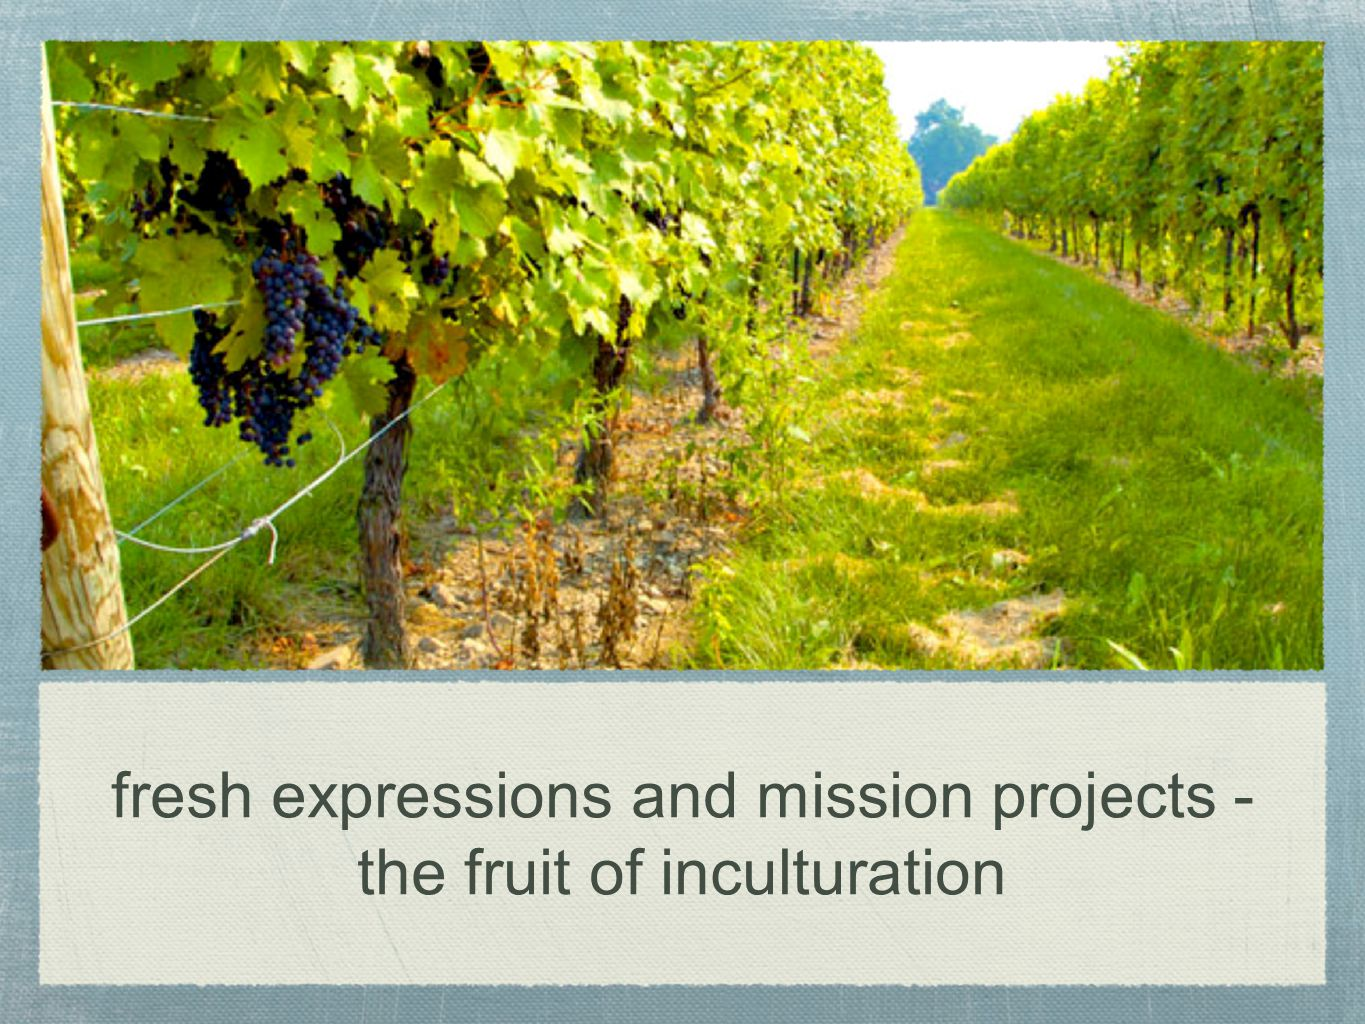 fresh expressions and mission projects - the fruit of inculturation